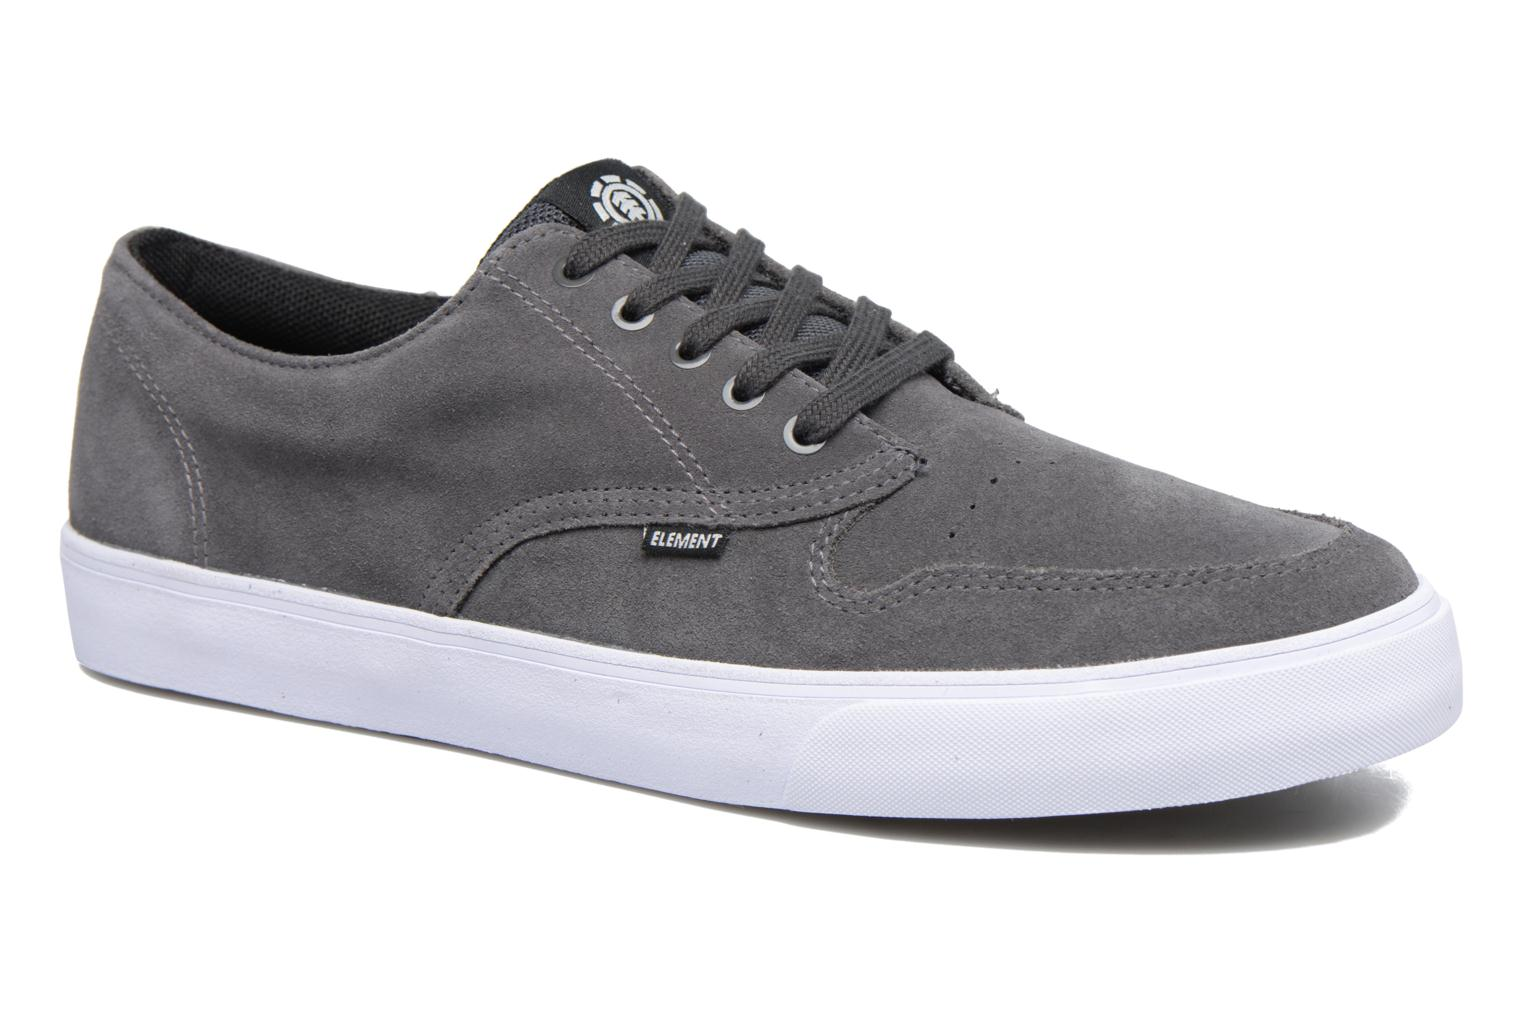 Chaussures Element Y/Topaz C3 - Stone Chambray-Gris JPwQLMFd